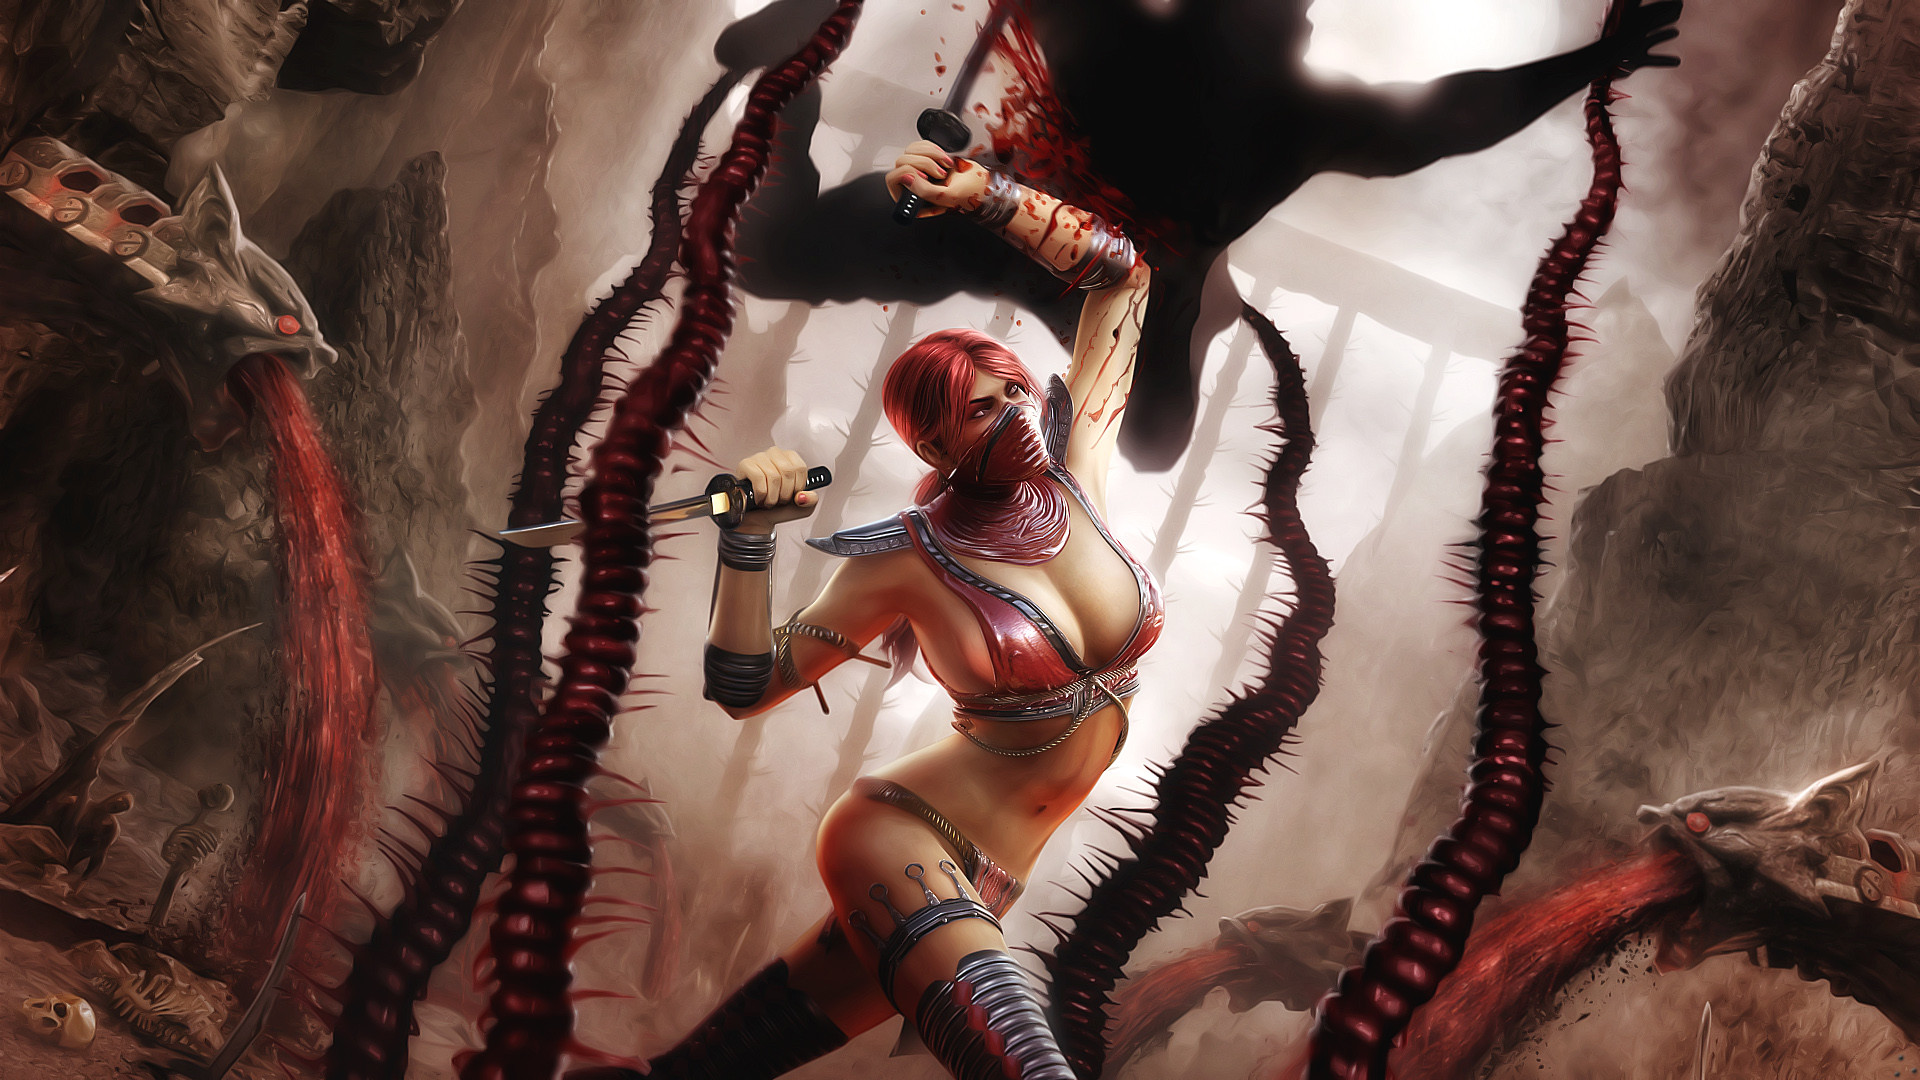 1920x1080 Skarlet in Mortal Kombat